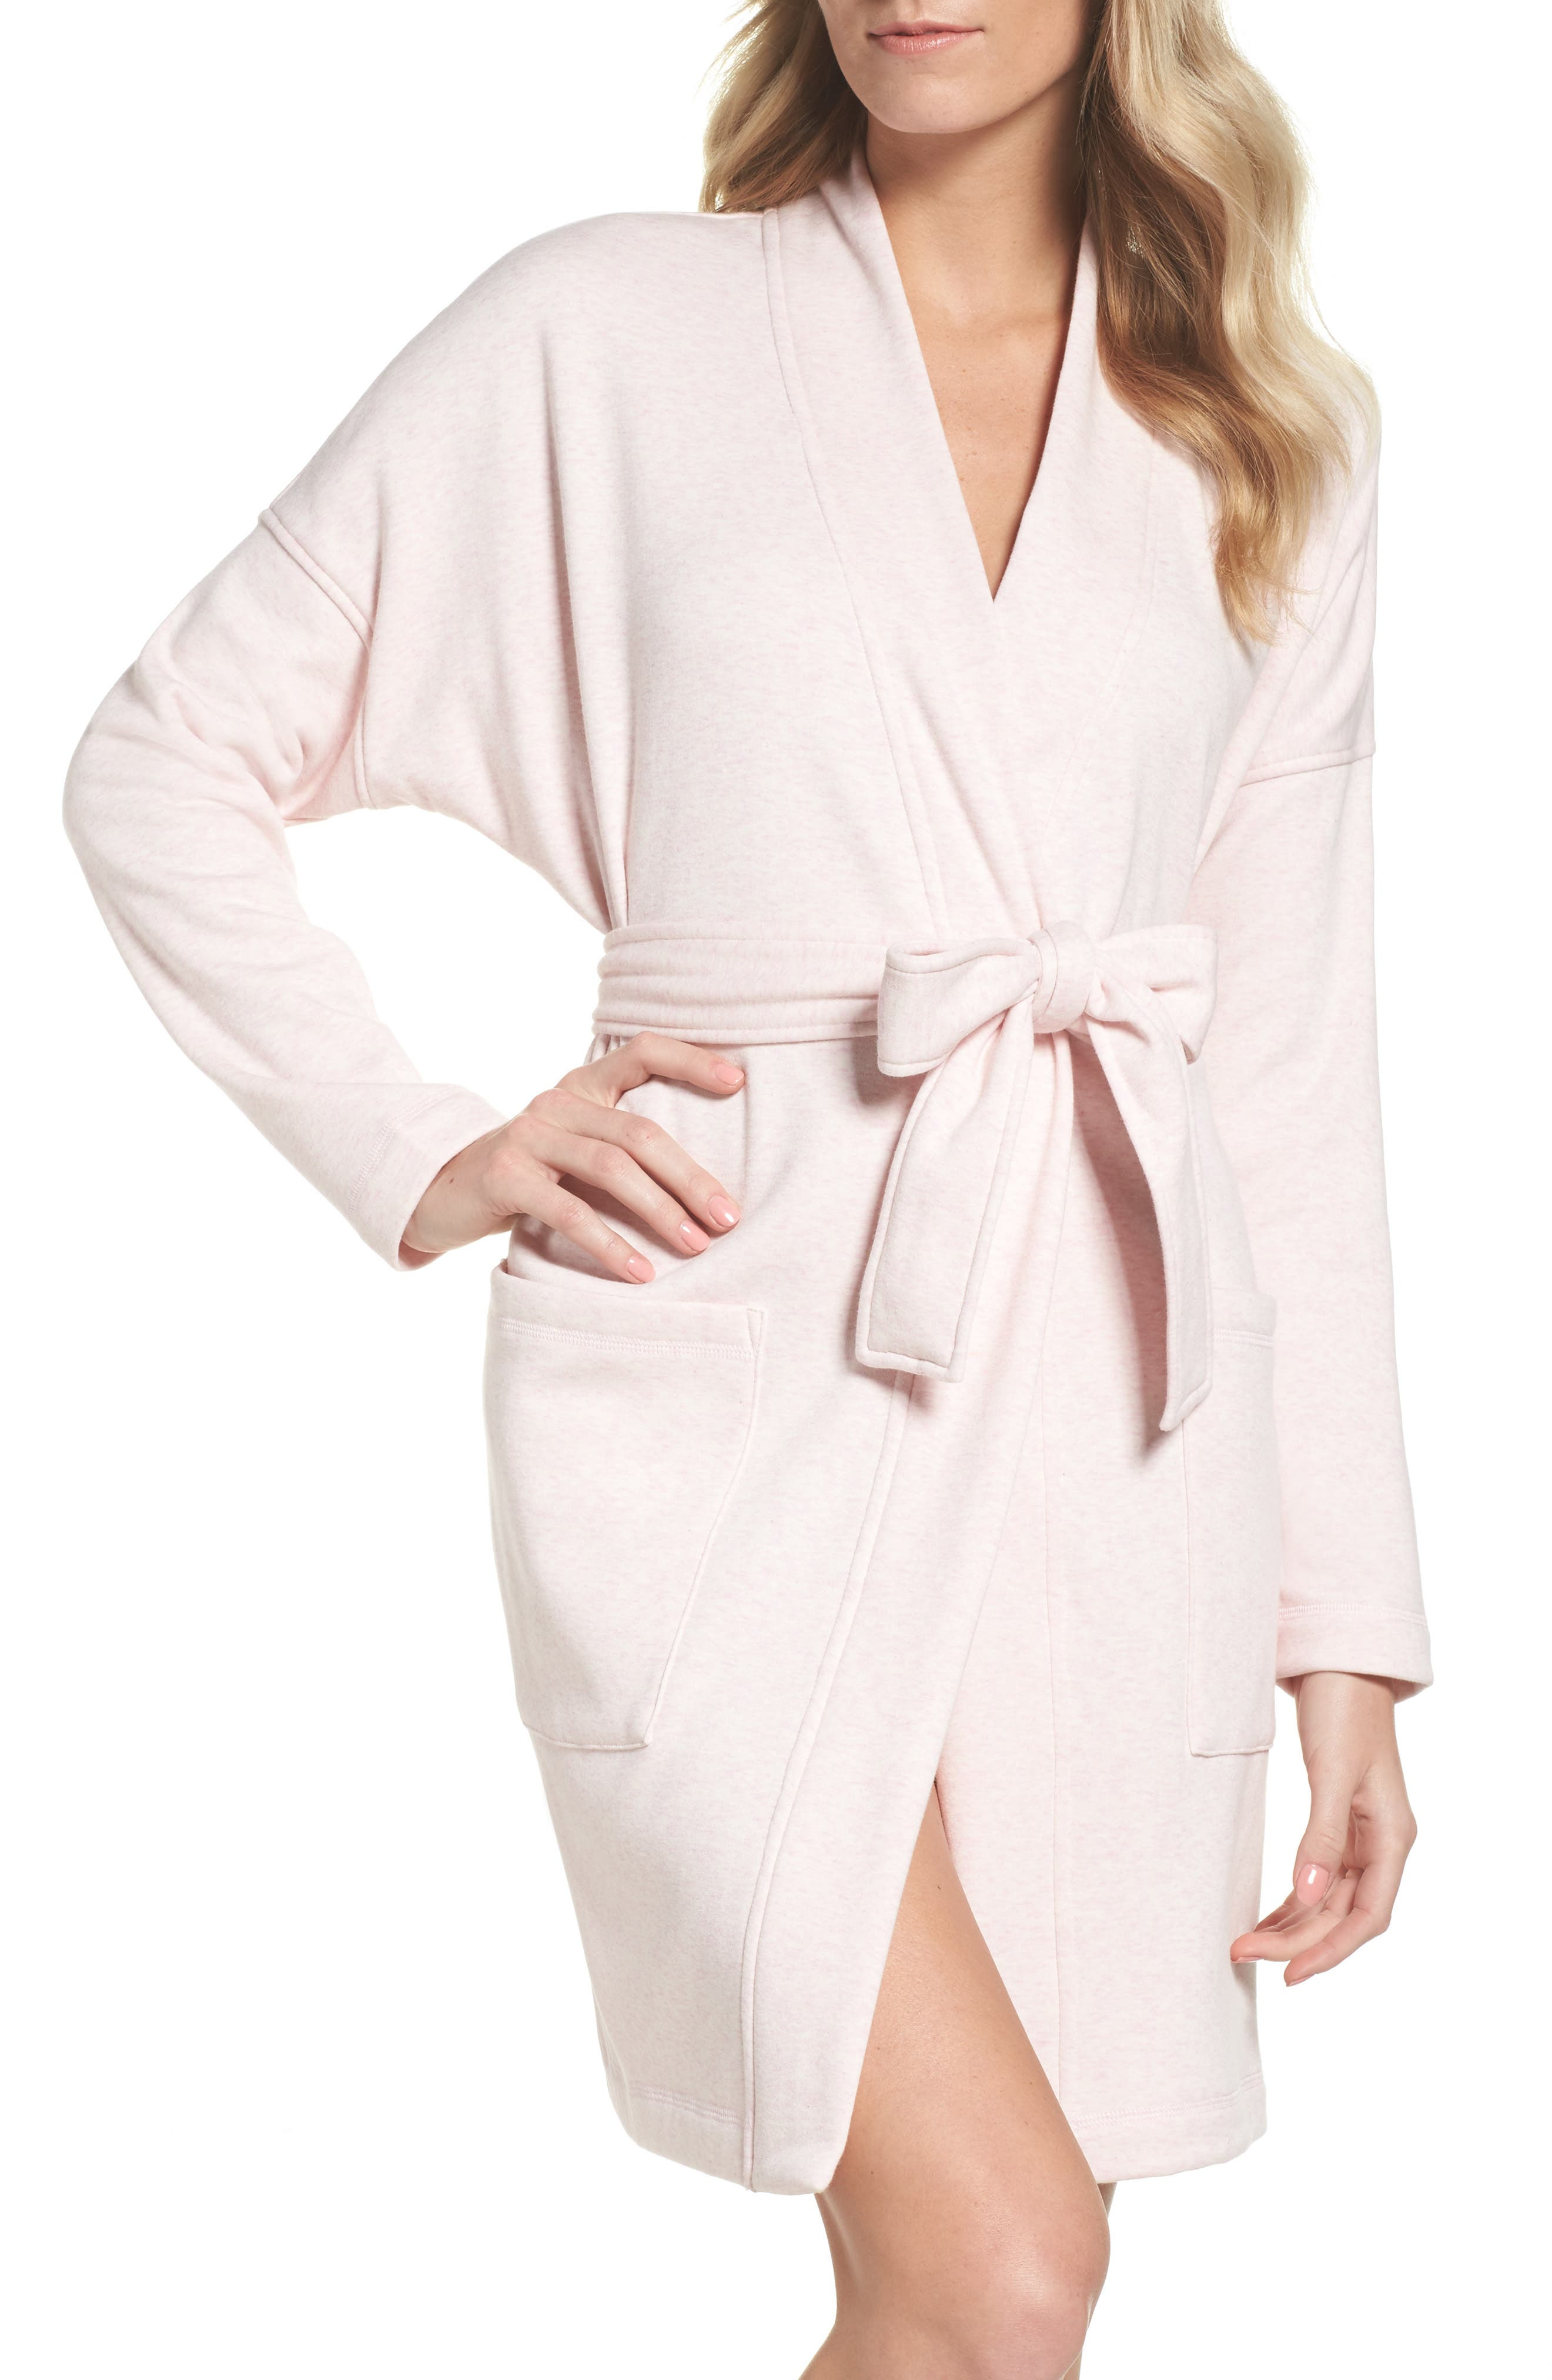 Braelyn Robe,                         Main,                         color, Seashell Pink Heather